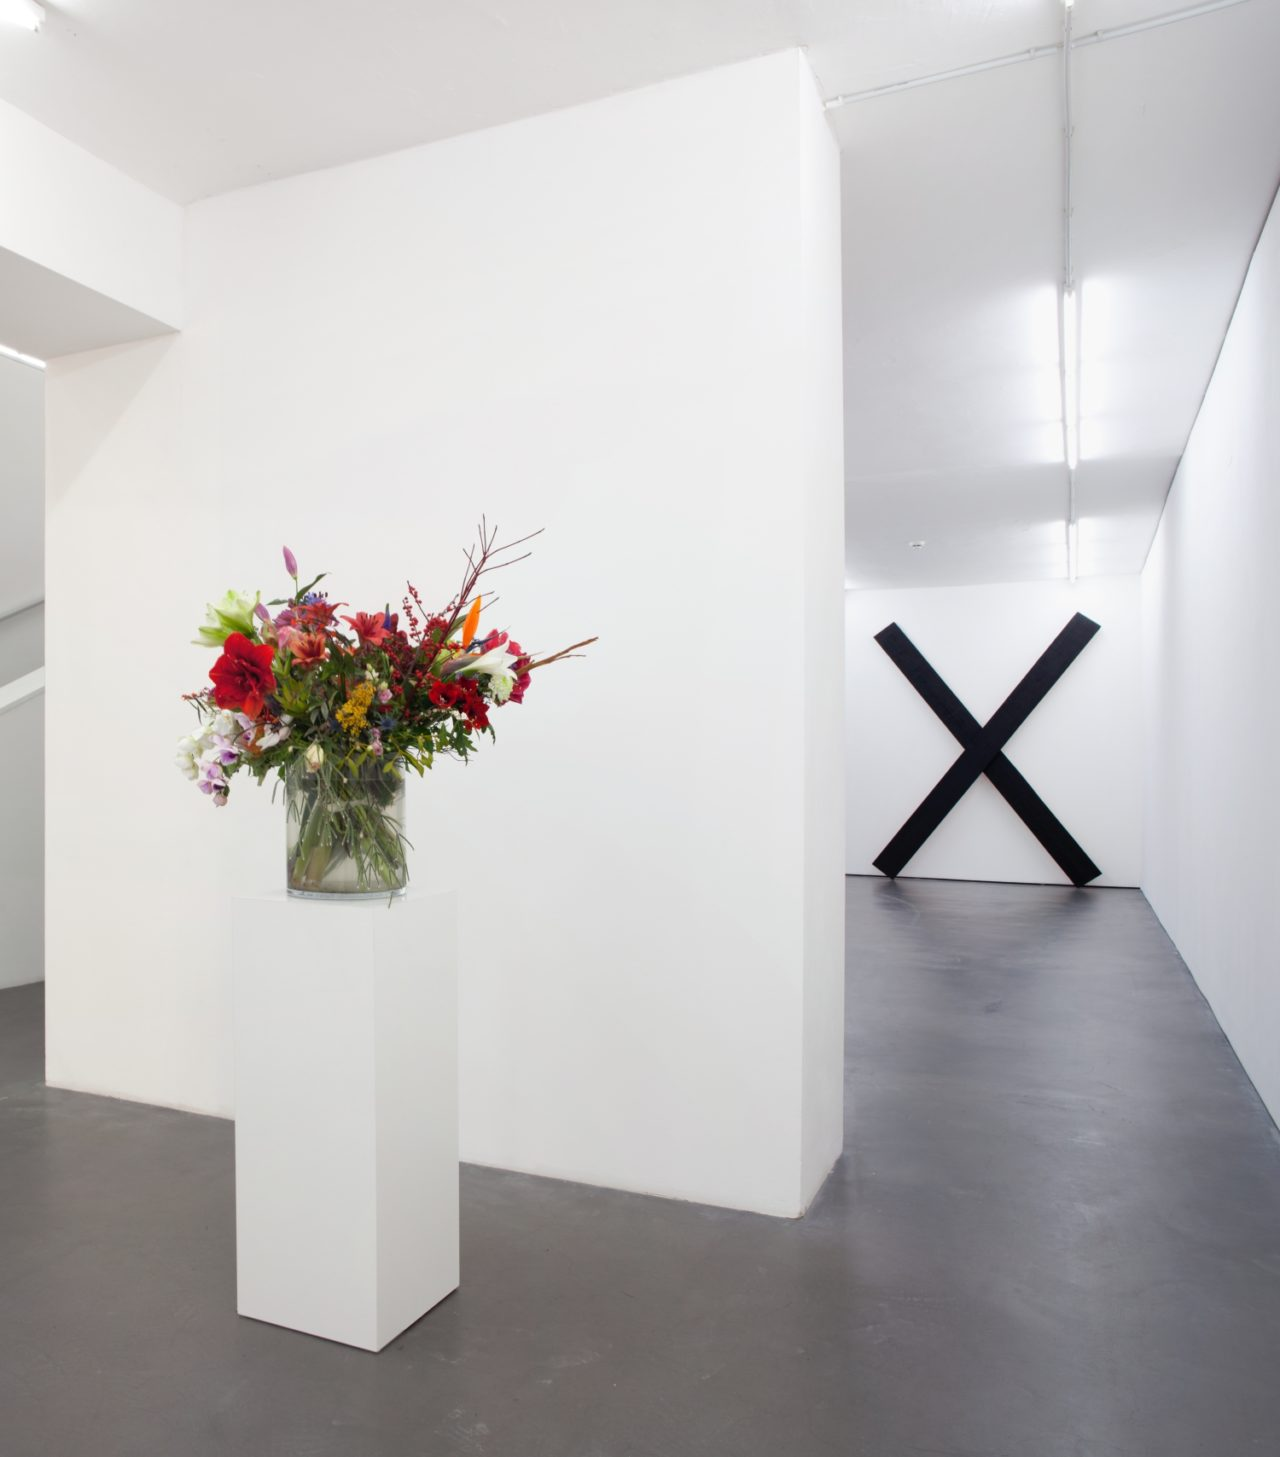 Links: Willem de Rooij, Bouquet V (2010); Rechts: Wade Guyton, x sculpture (2005)